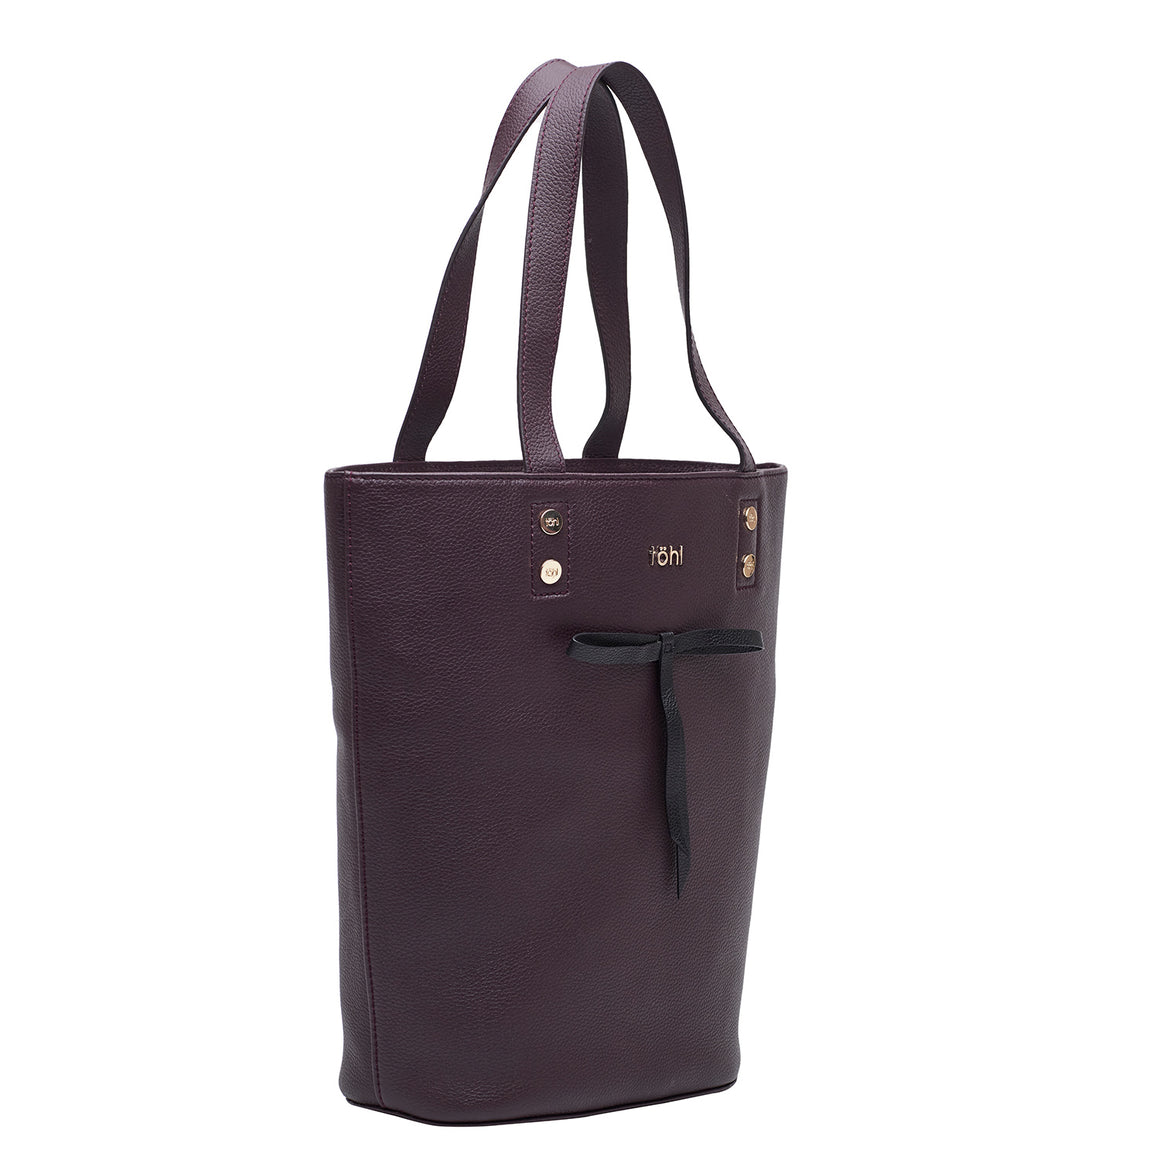 TT 0016 - TOHL RUSSELL WOMEN'S TOTE BAG - PLUM